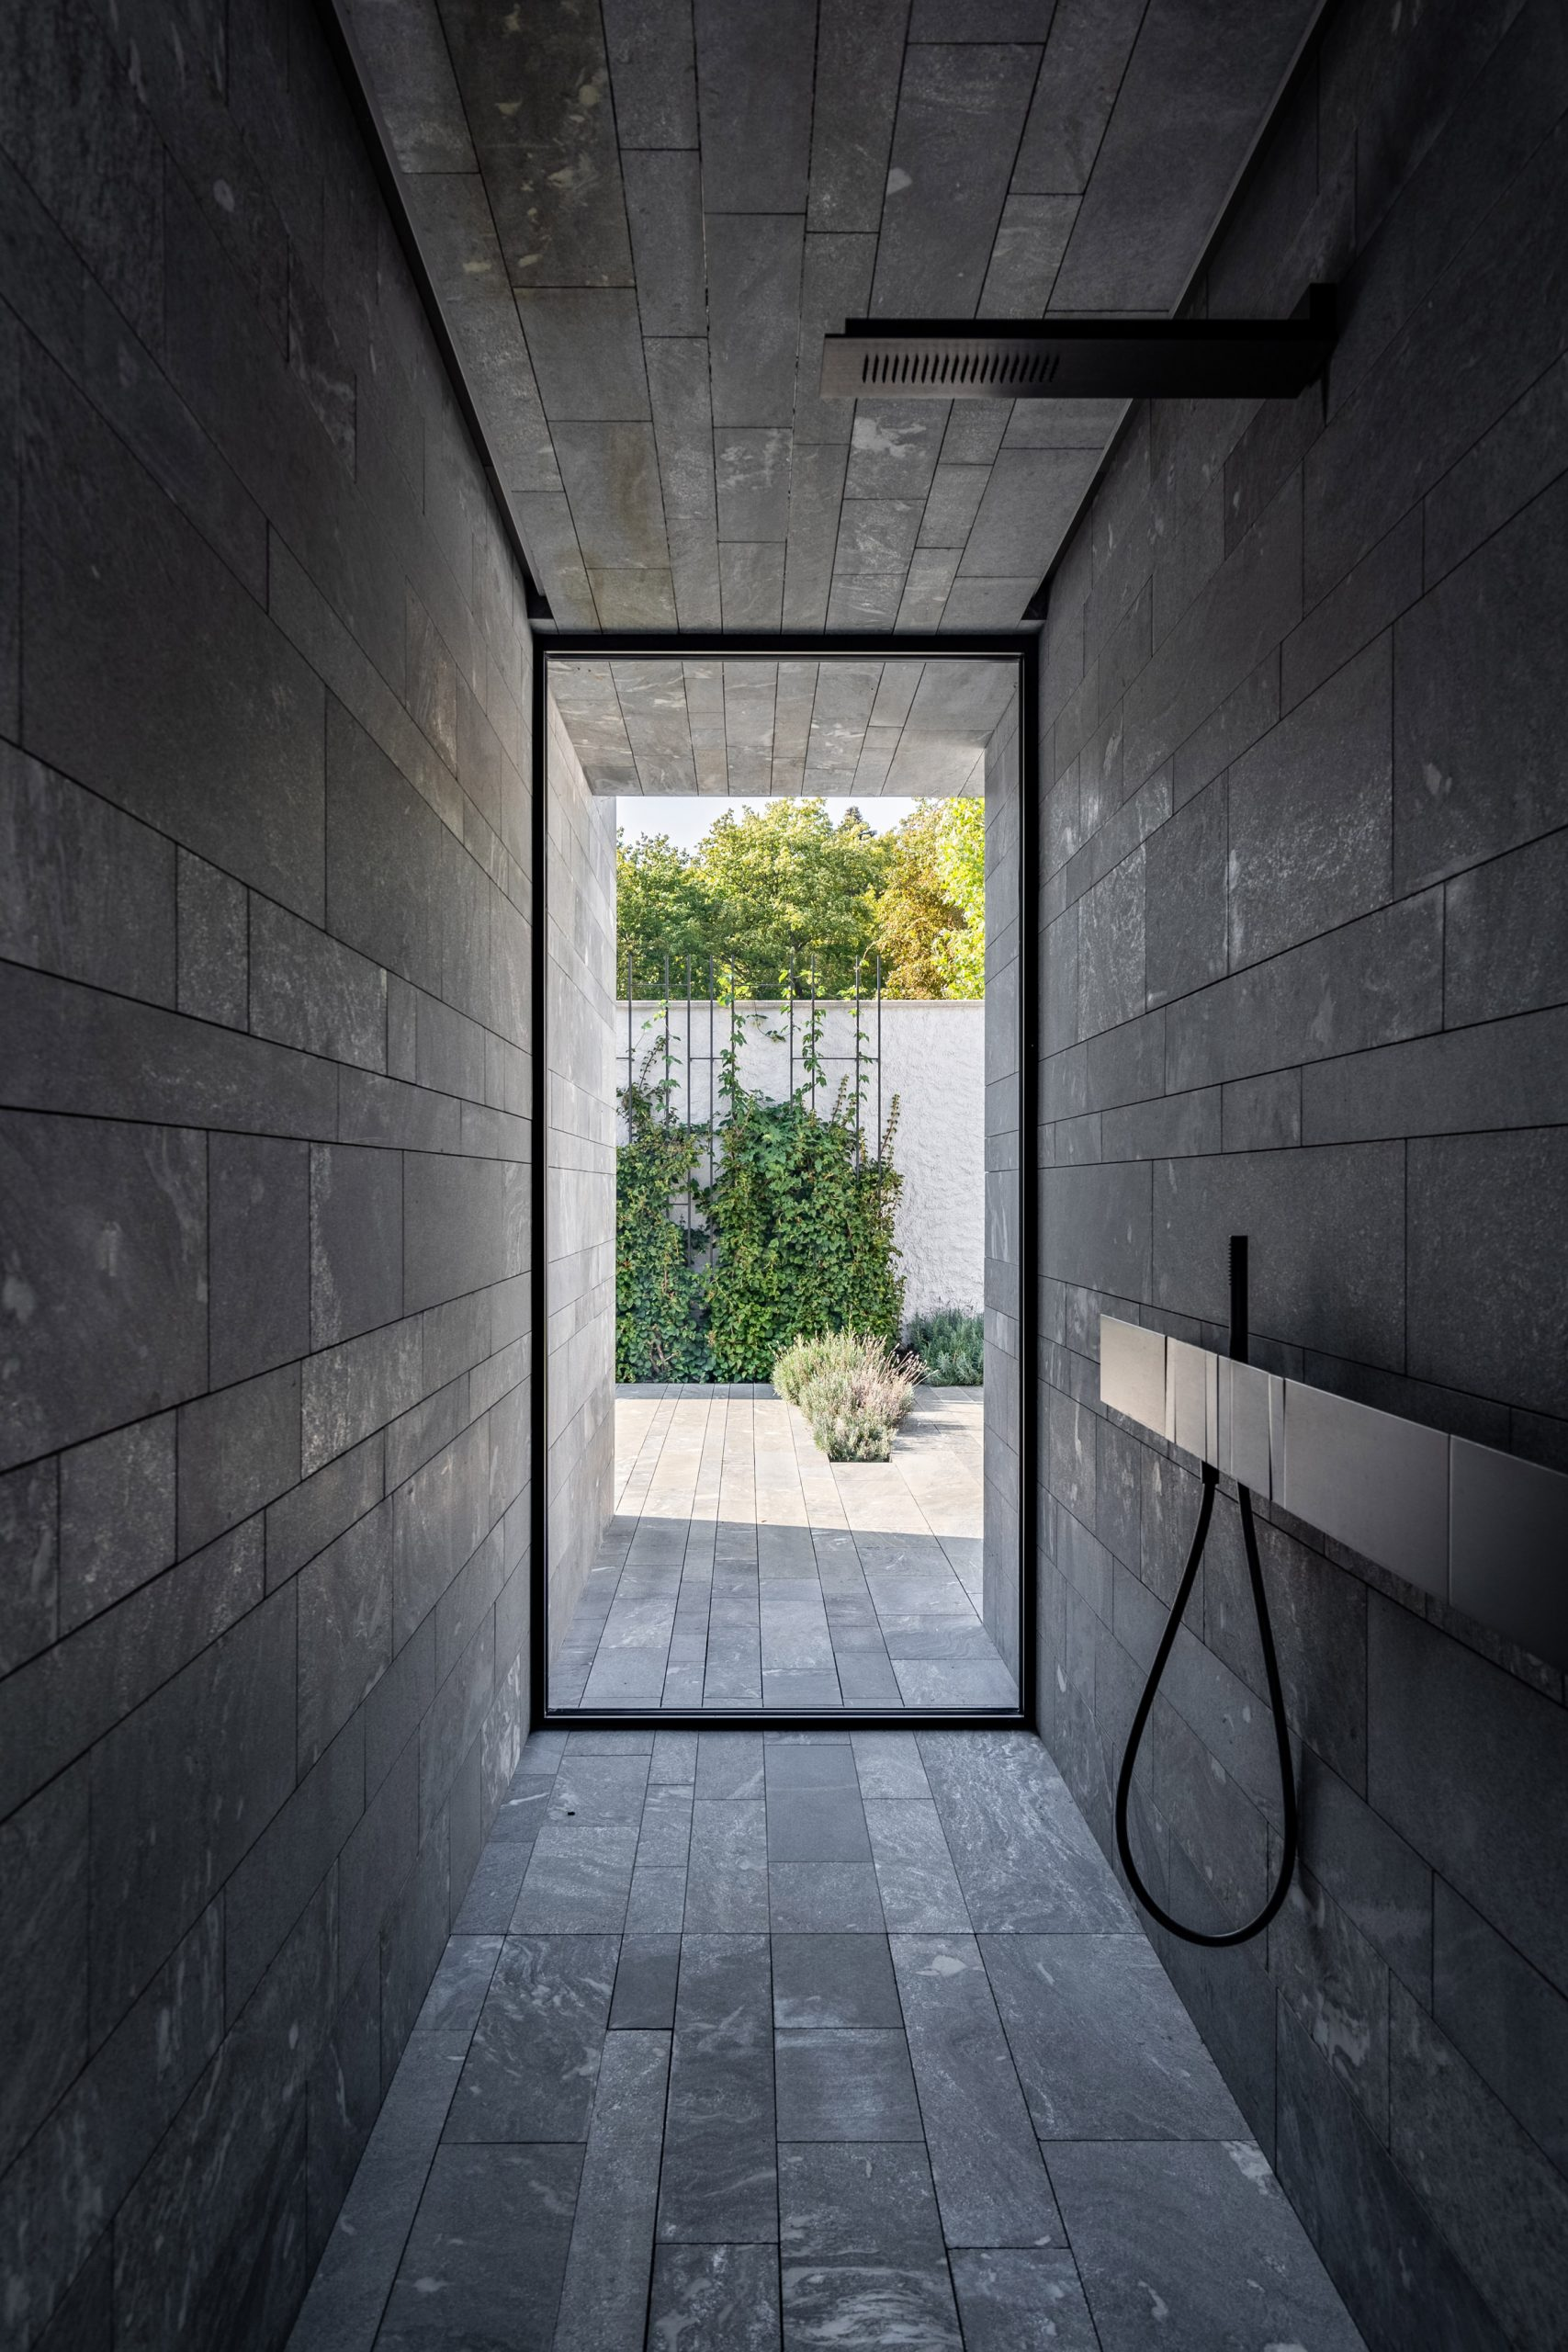 A stone-walled shower room inside a private spa